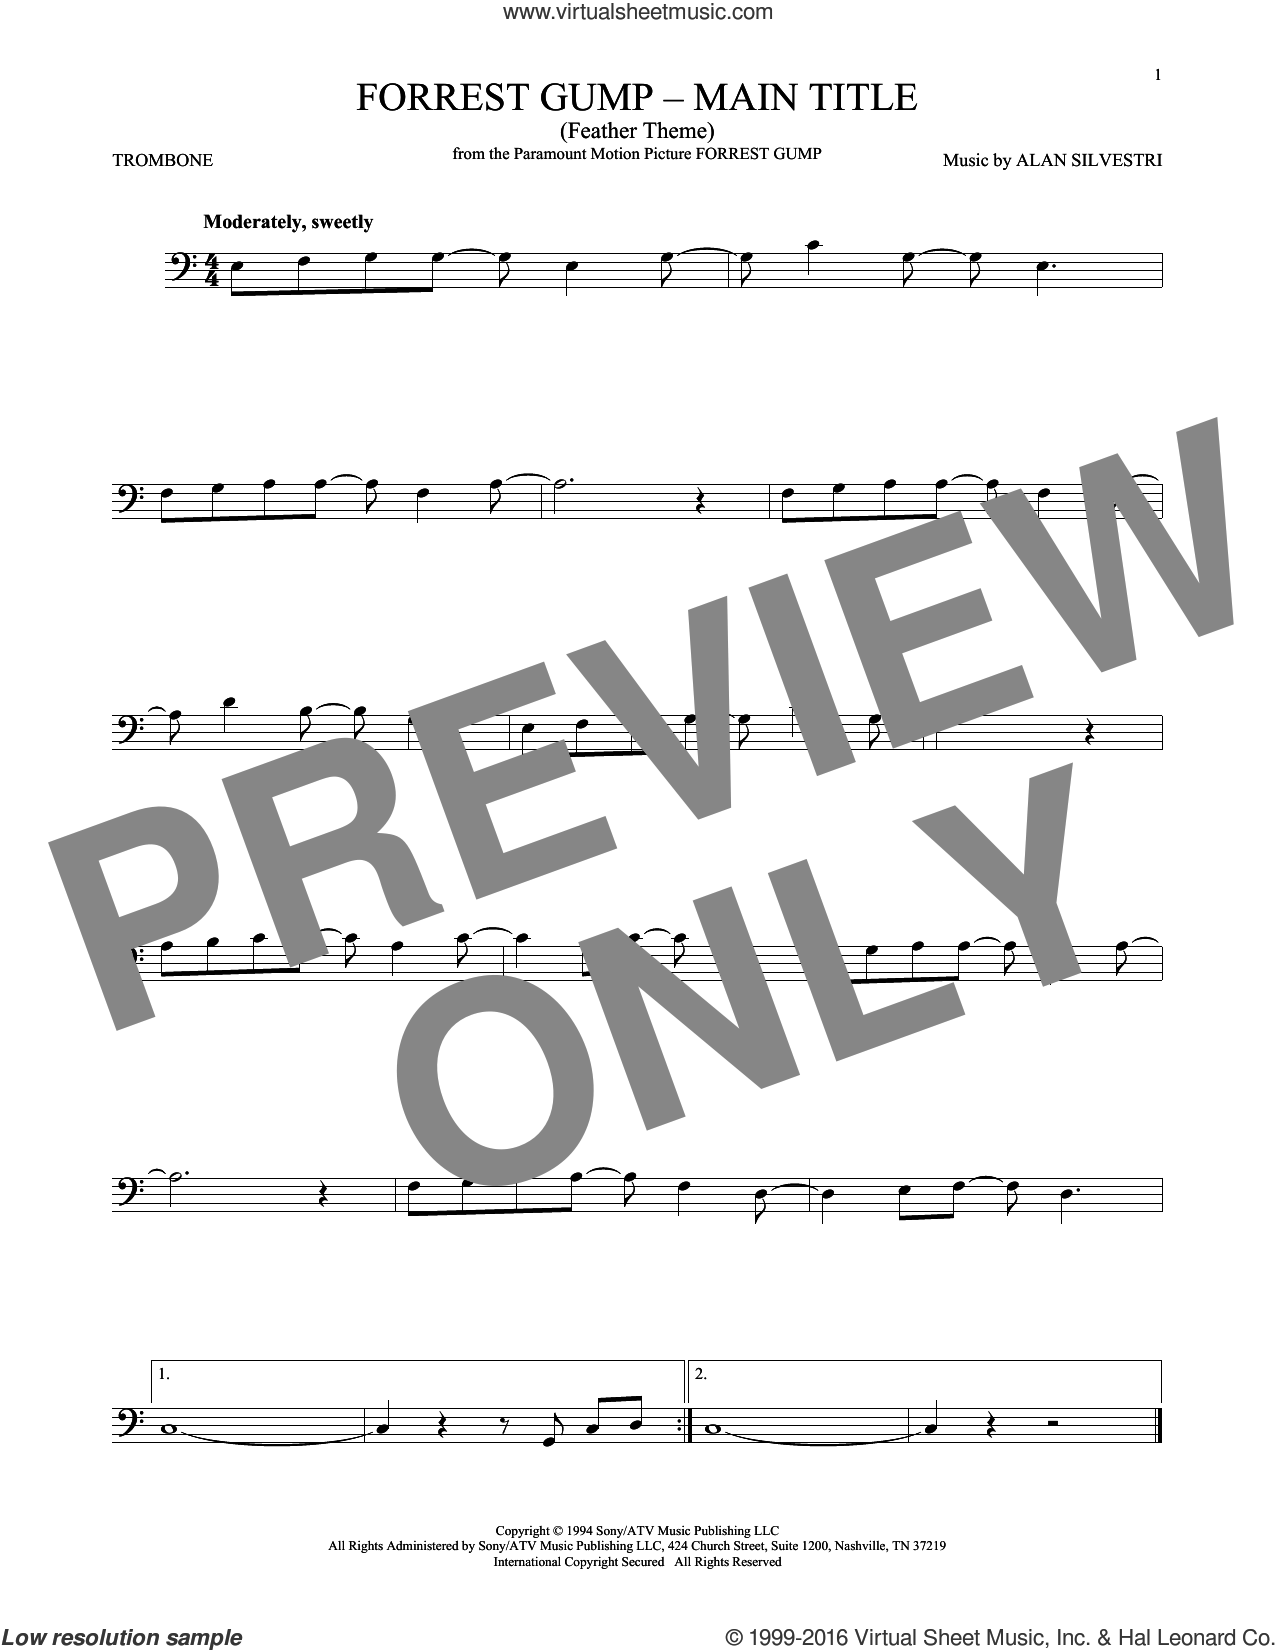 Forrest Gump - Main Title (Feather Theme) sheet music for trombone solo by Alan Silvestri, intermediate skill level